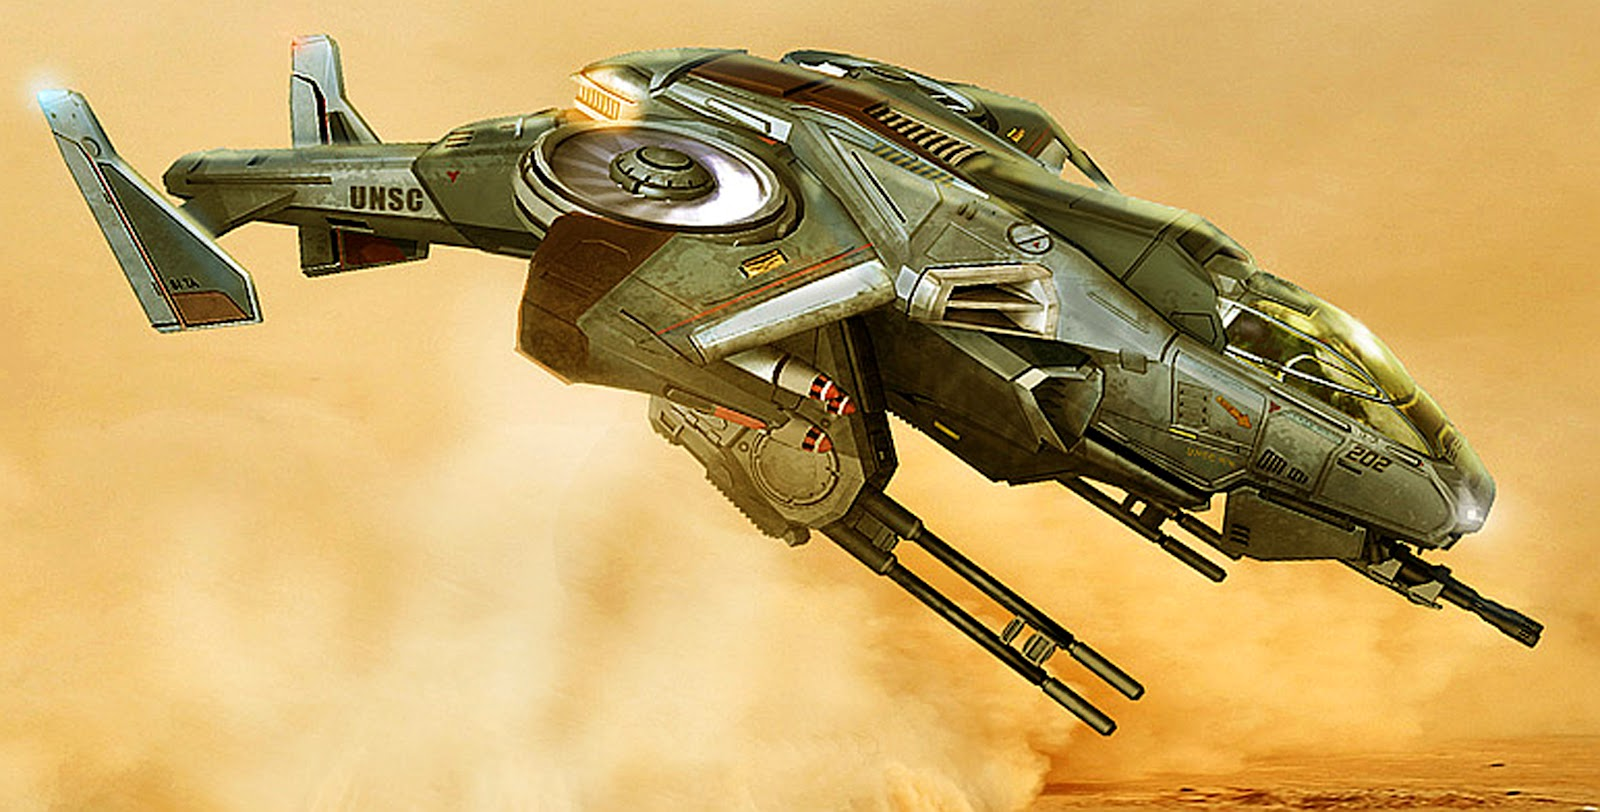 Halo 4 concept art armor sci fi weapons and vehicles